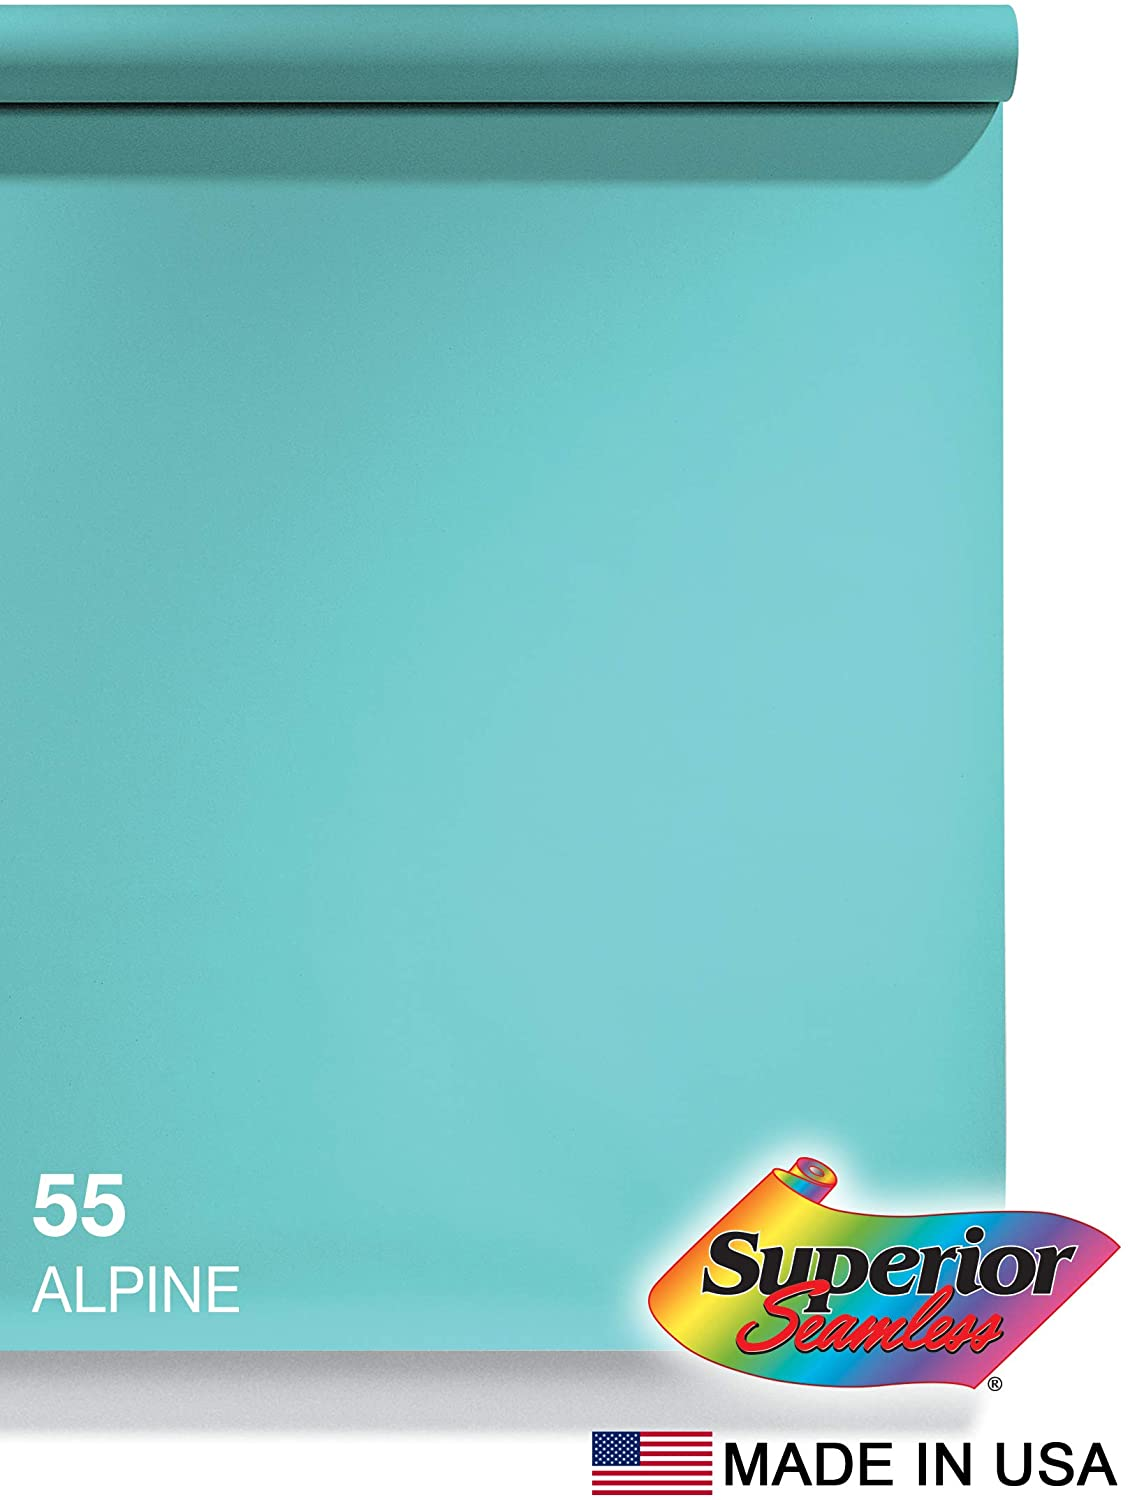 Superior Seamless Photography Background Paper, 55 Alpine (53 inches Wide x 18 feet Long)